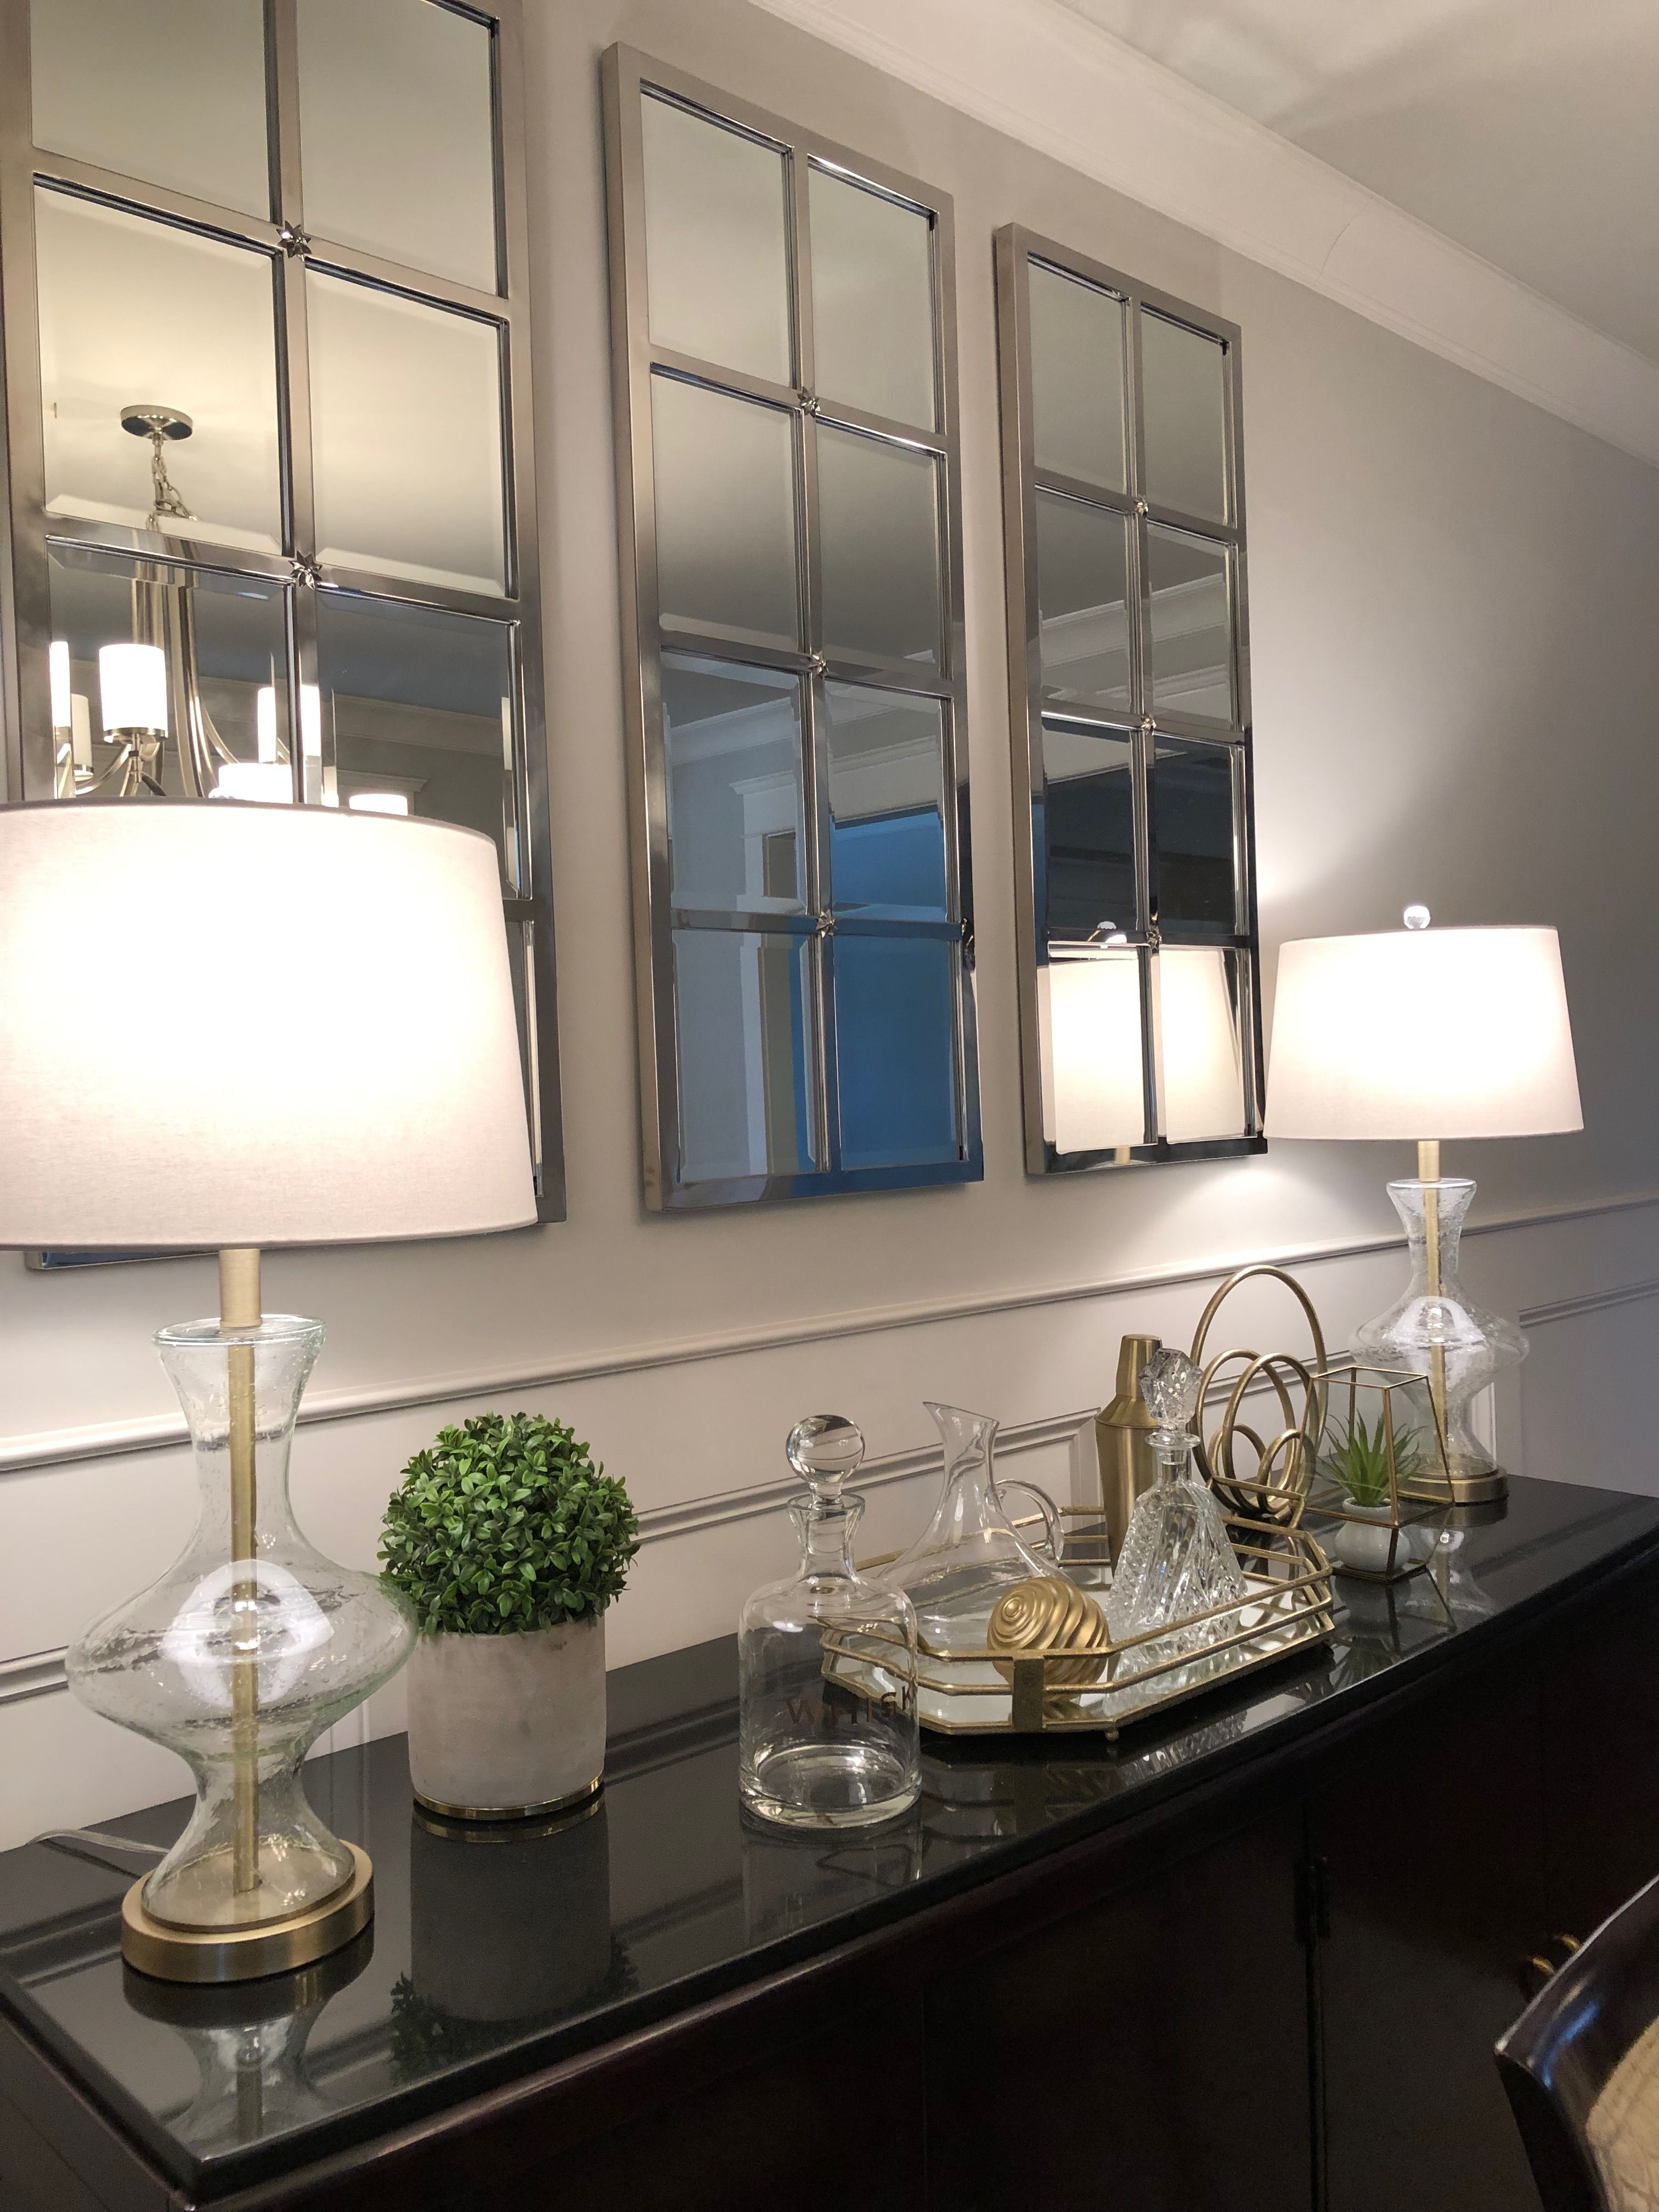 Dining Room Decor Black And Gold Buffet Decor Pottery Barn Mirrors Over Dining Roo Mirror Dining Room Dining Room Buffet Table Decor Dining Room Buffet Table